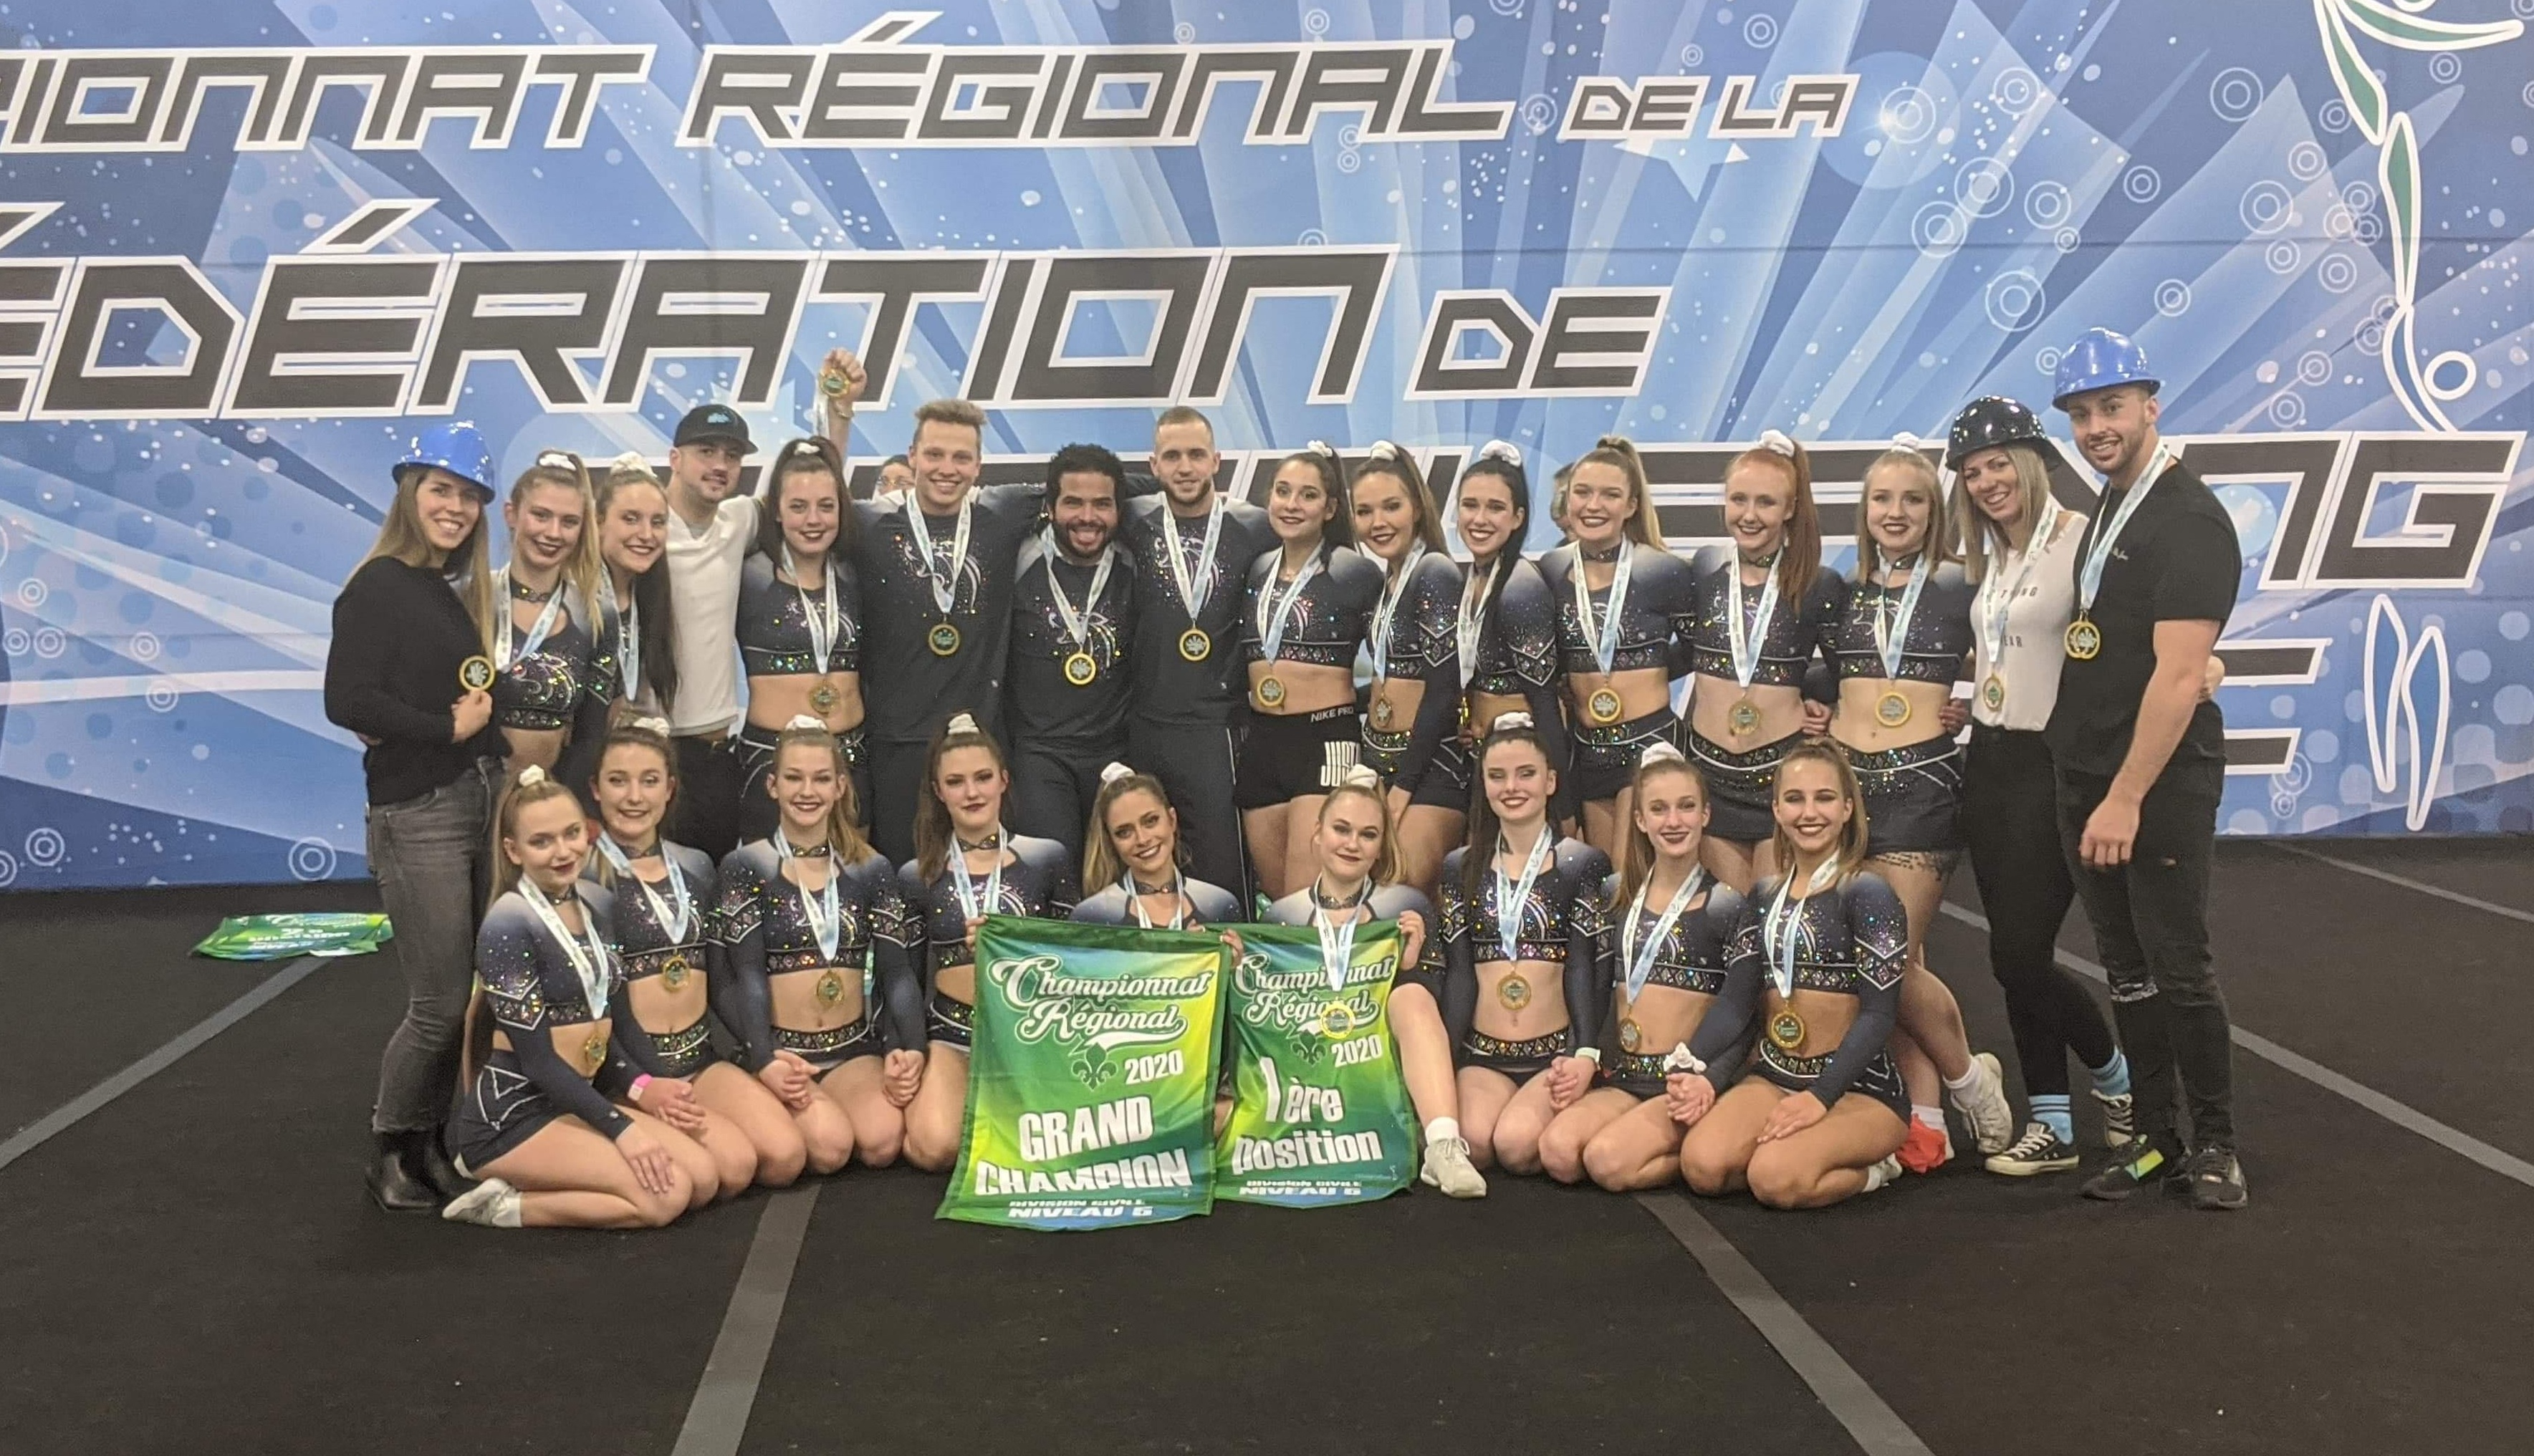 Candiac cheerleaders carry out regionally